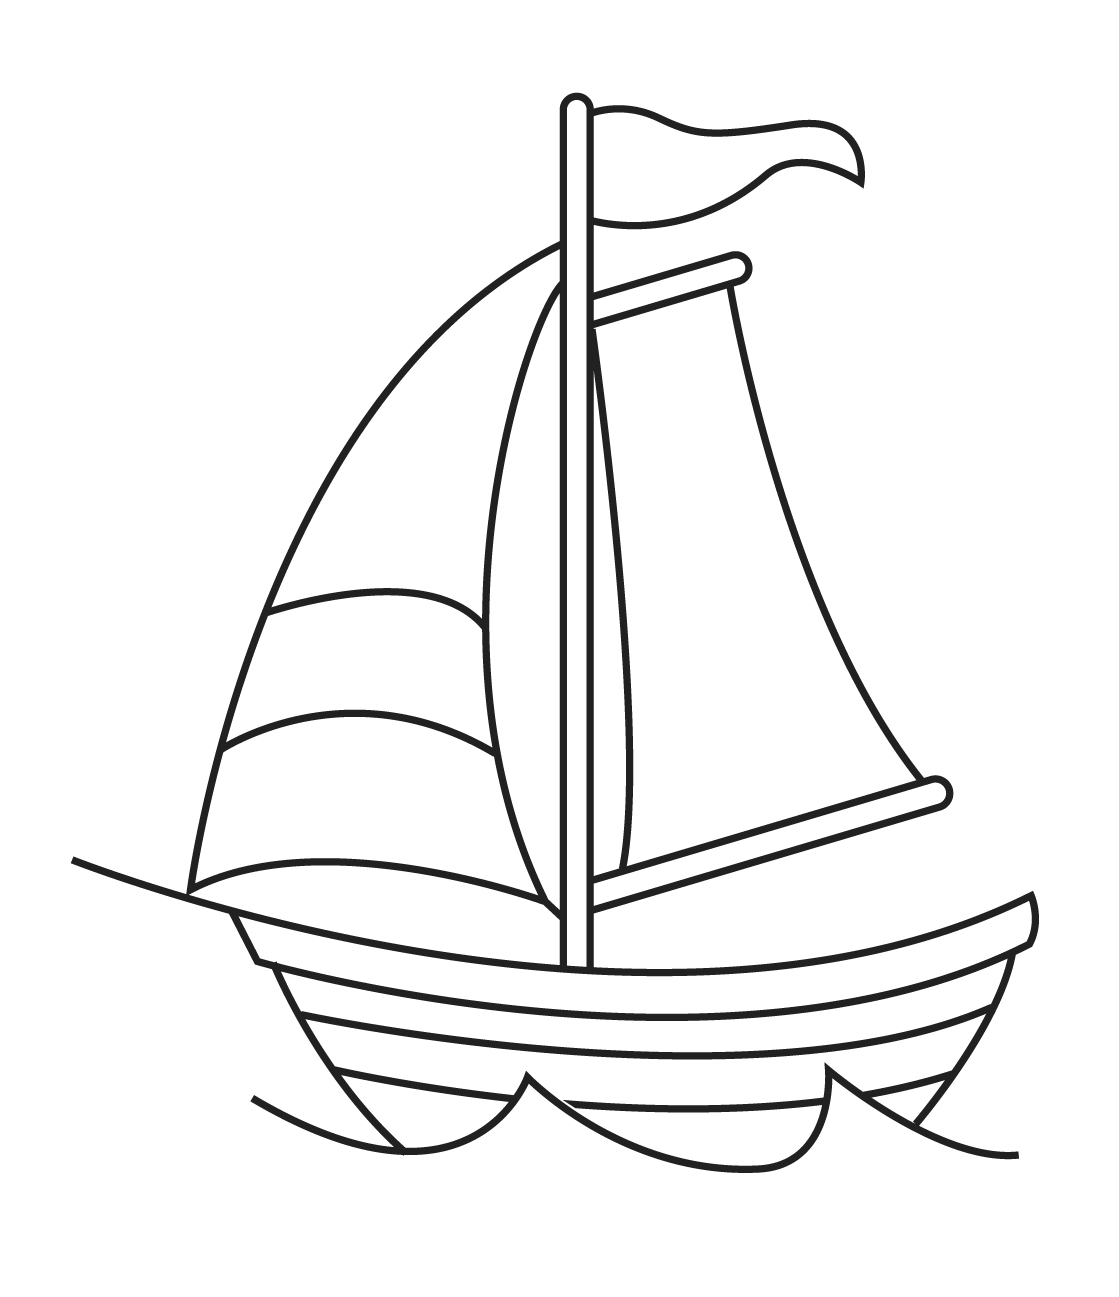 Similiar Black And White Sailboat Drawing Keywords.